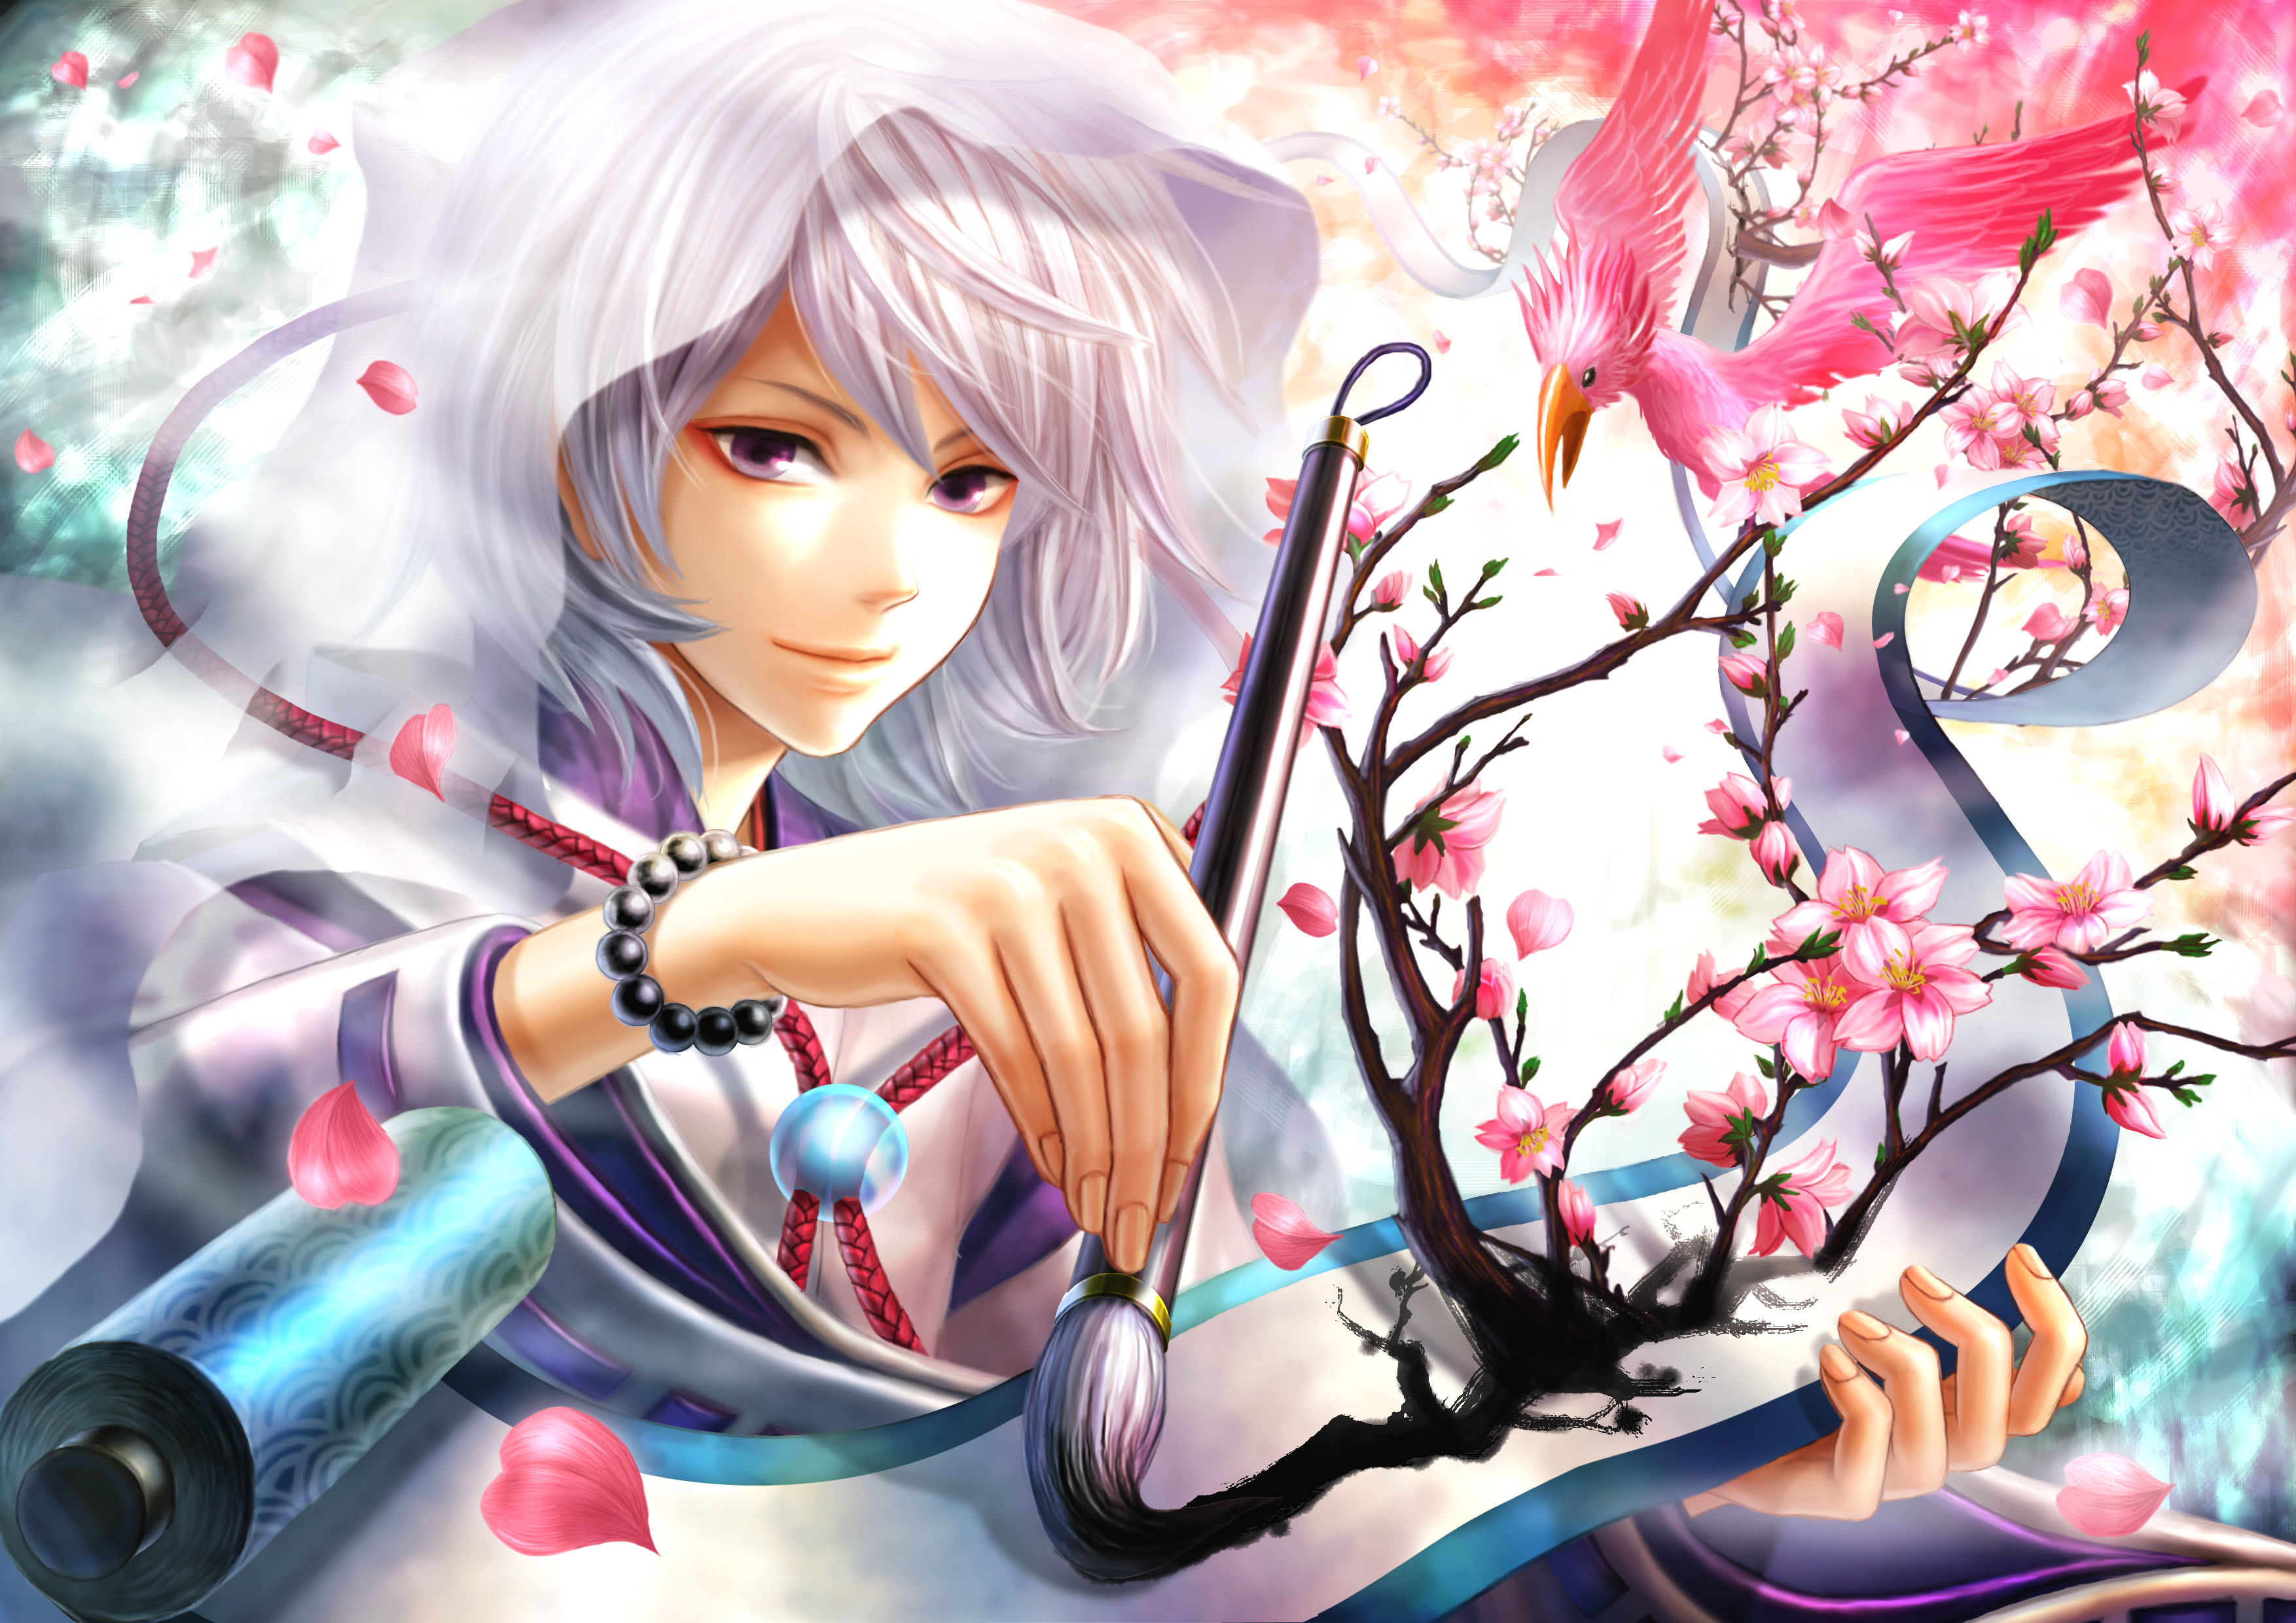 Mega Post) Wallpapers Anime | Its you, Creativity and My heart